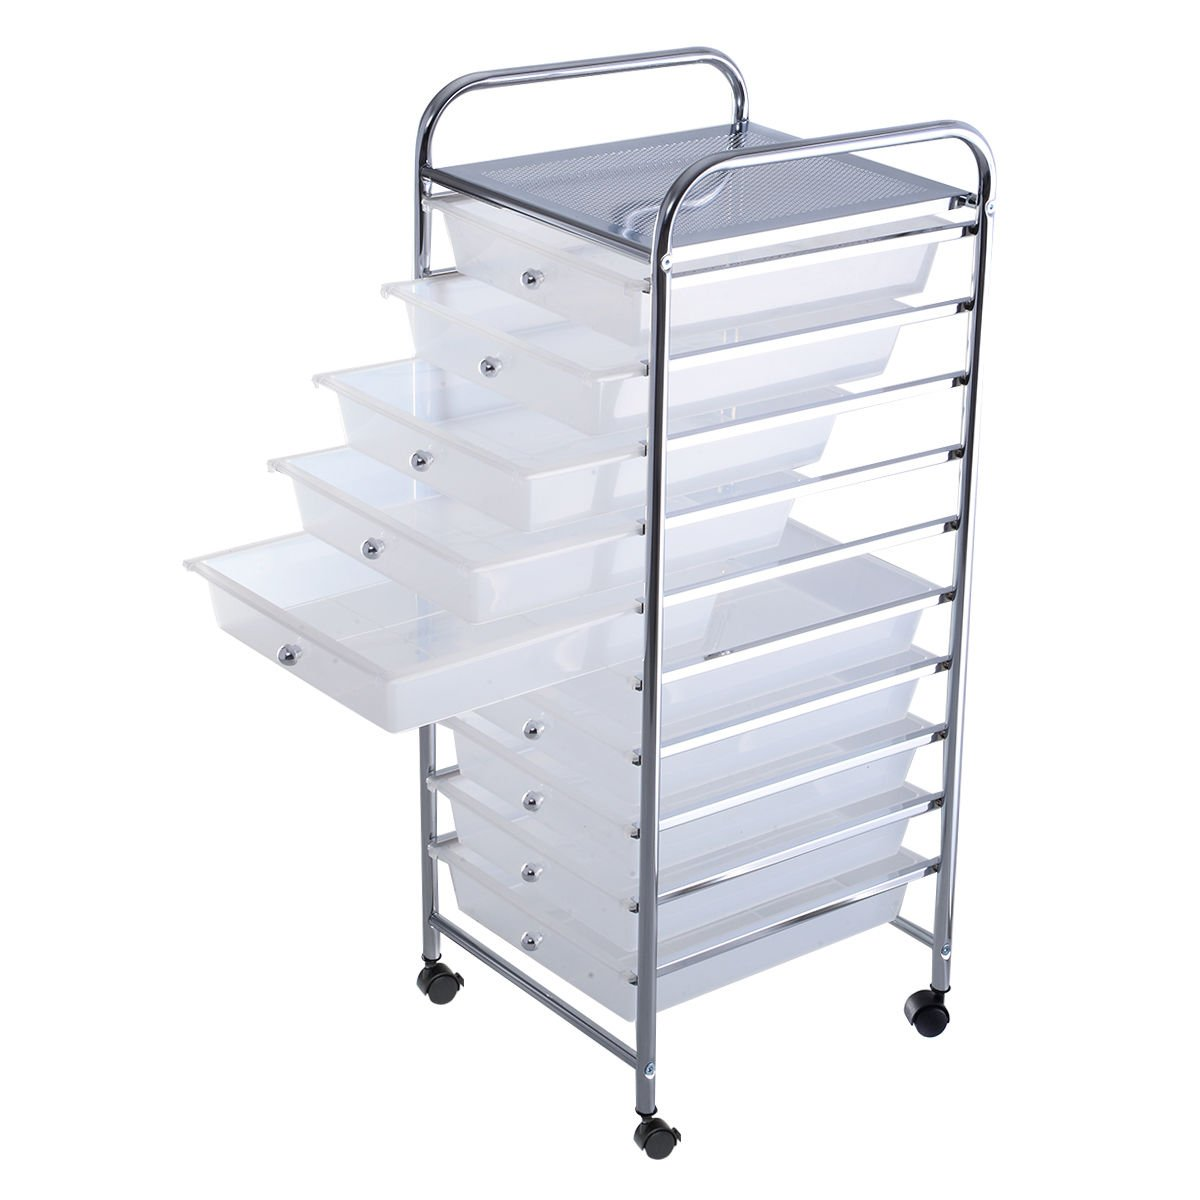 10 Scrapbook Paper Drawer Rolling Storage Cart Office School Organizer Clear